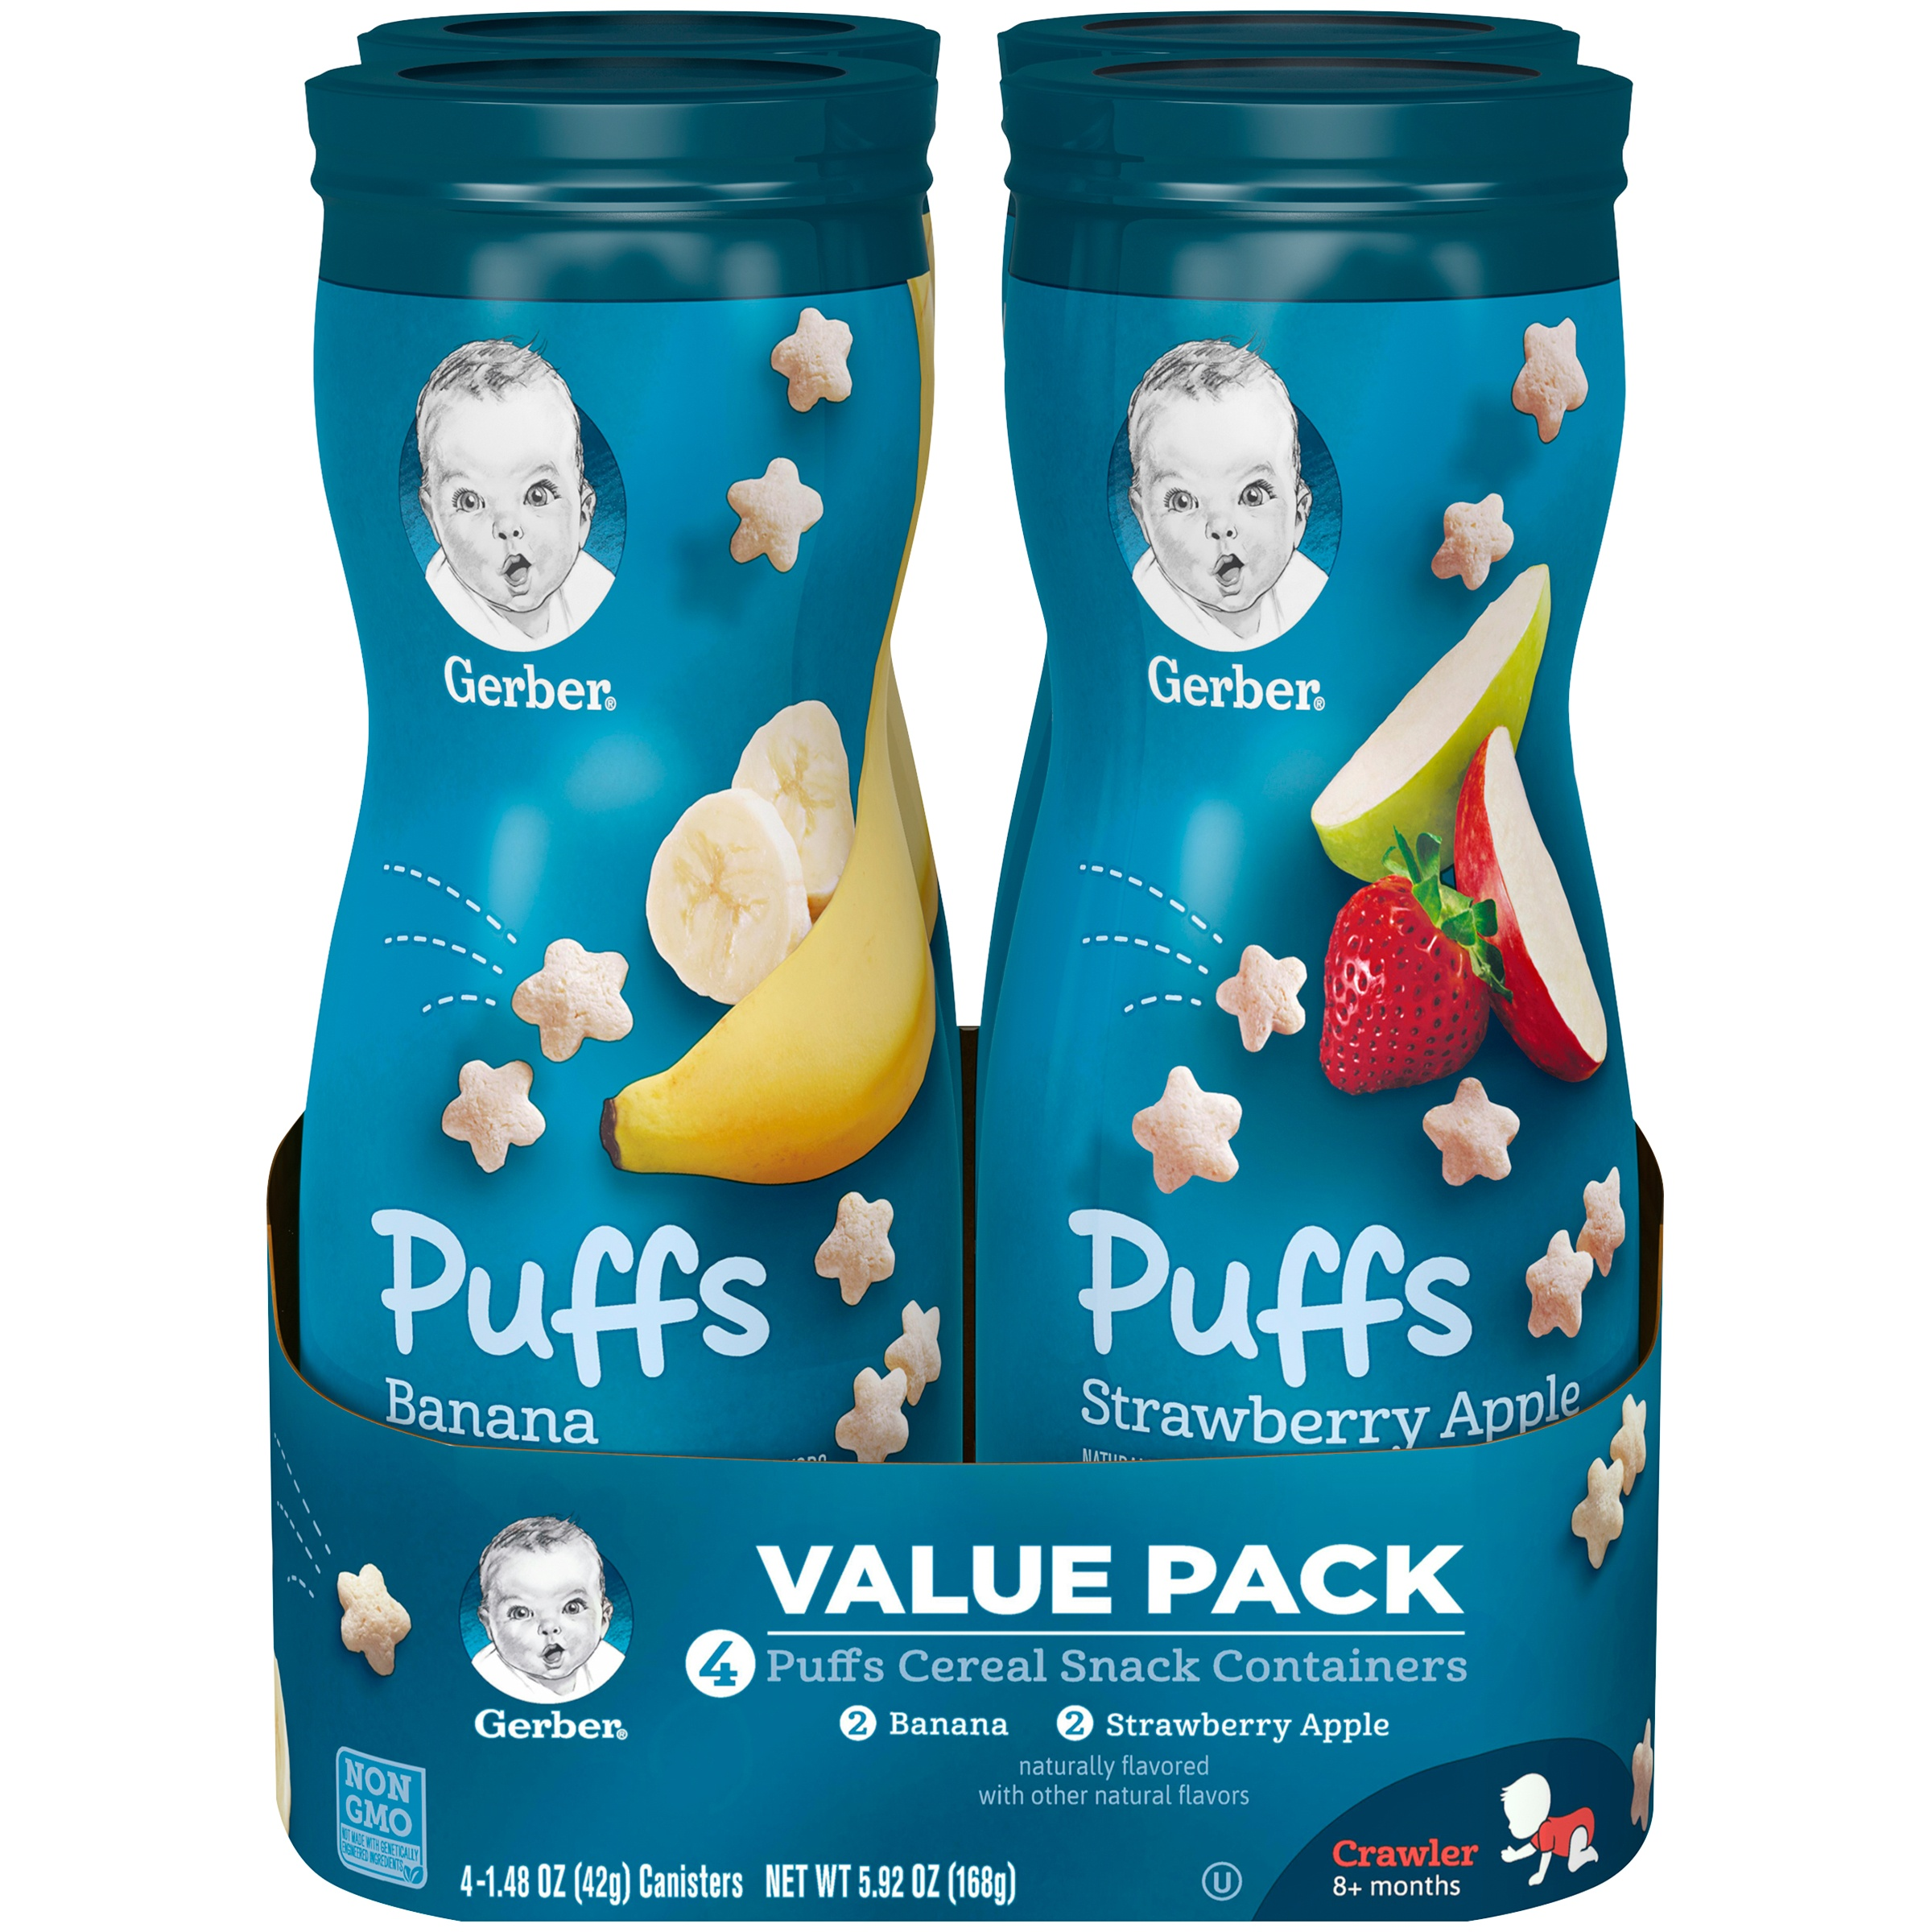 (4 Canisters) Gerber Puffs Banana/Strawberry Apple Cereal